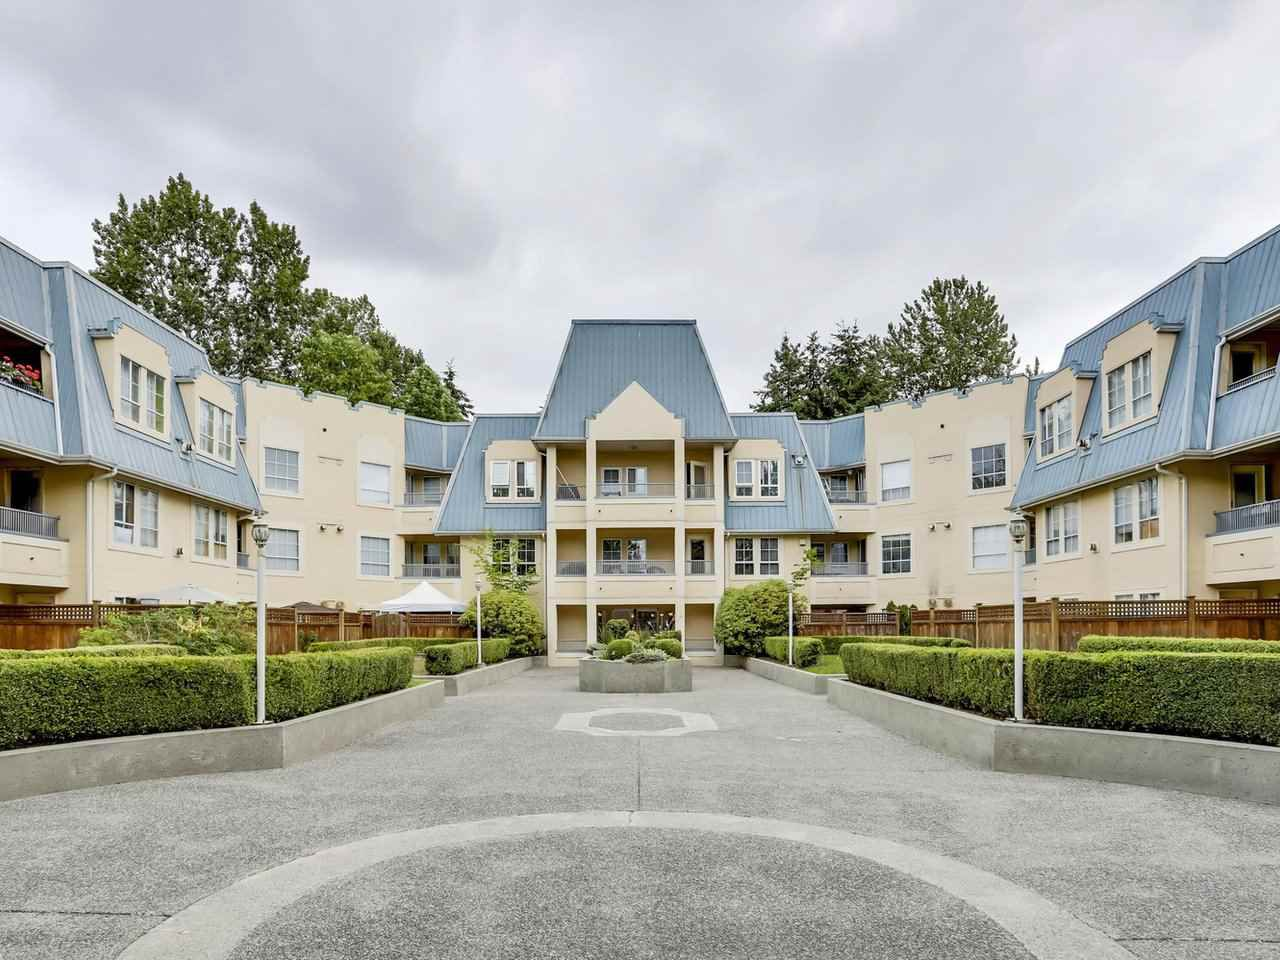 Main Photo: 107 295 SCHOOLHOUSE Street in Coquitlam: Maillardville Condo for sale : MLS®# R2286753